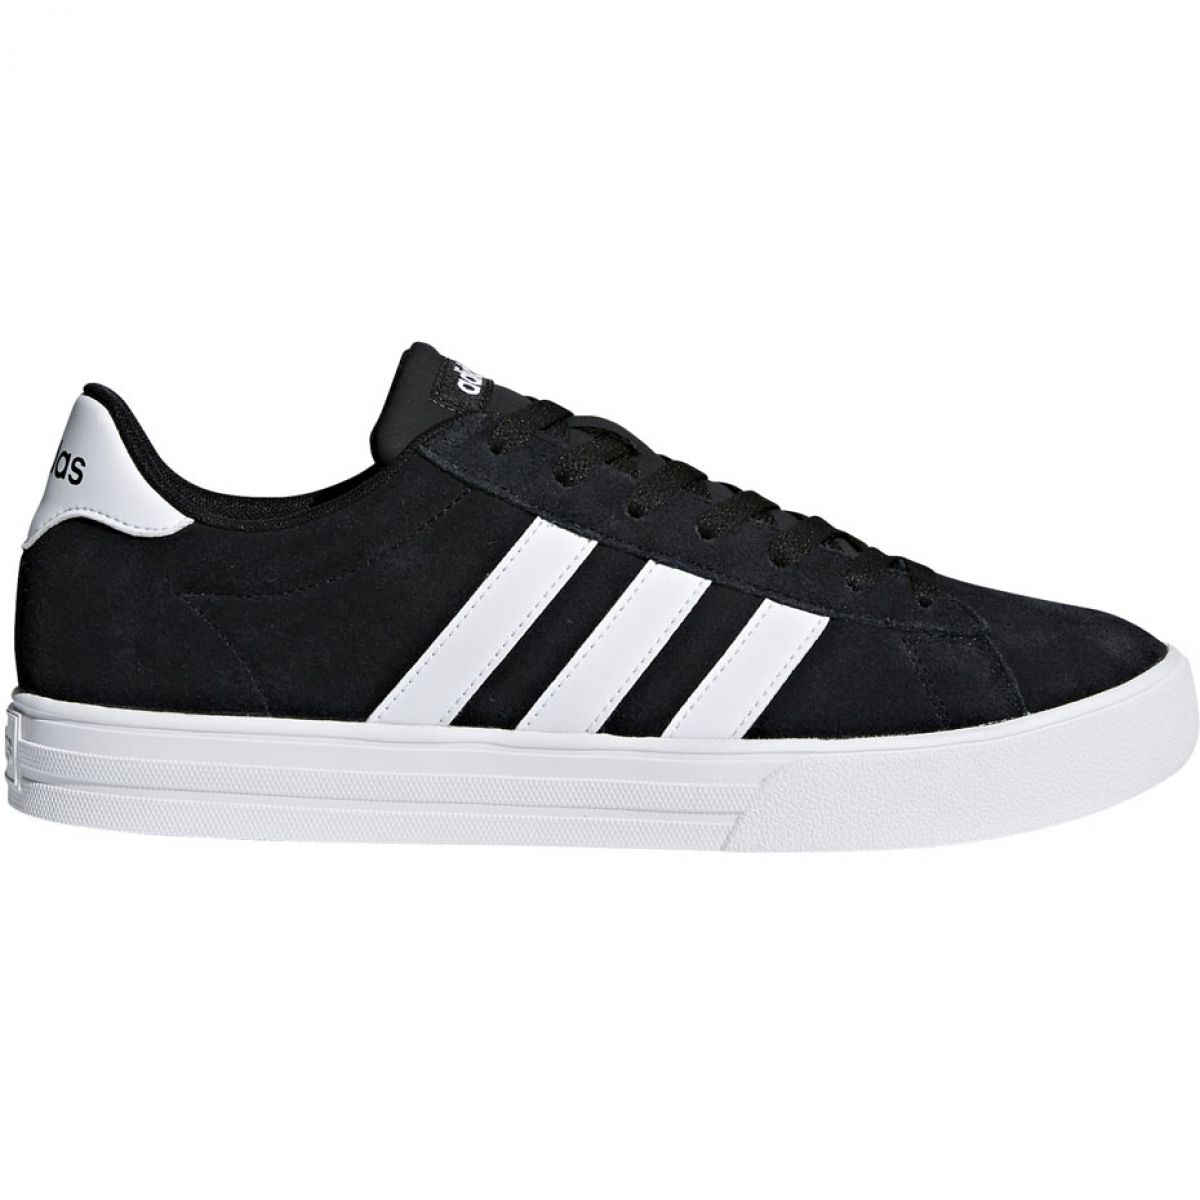 Chaussures adidas Daily 2.0